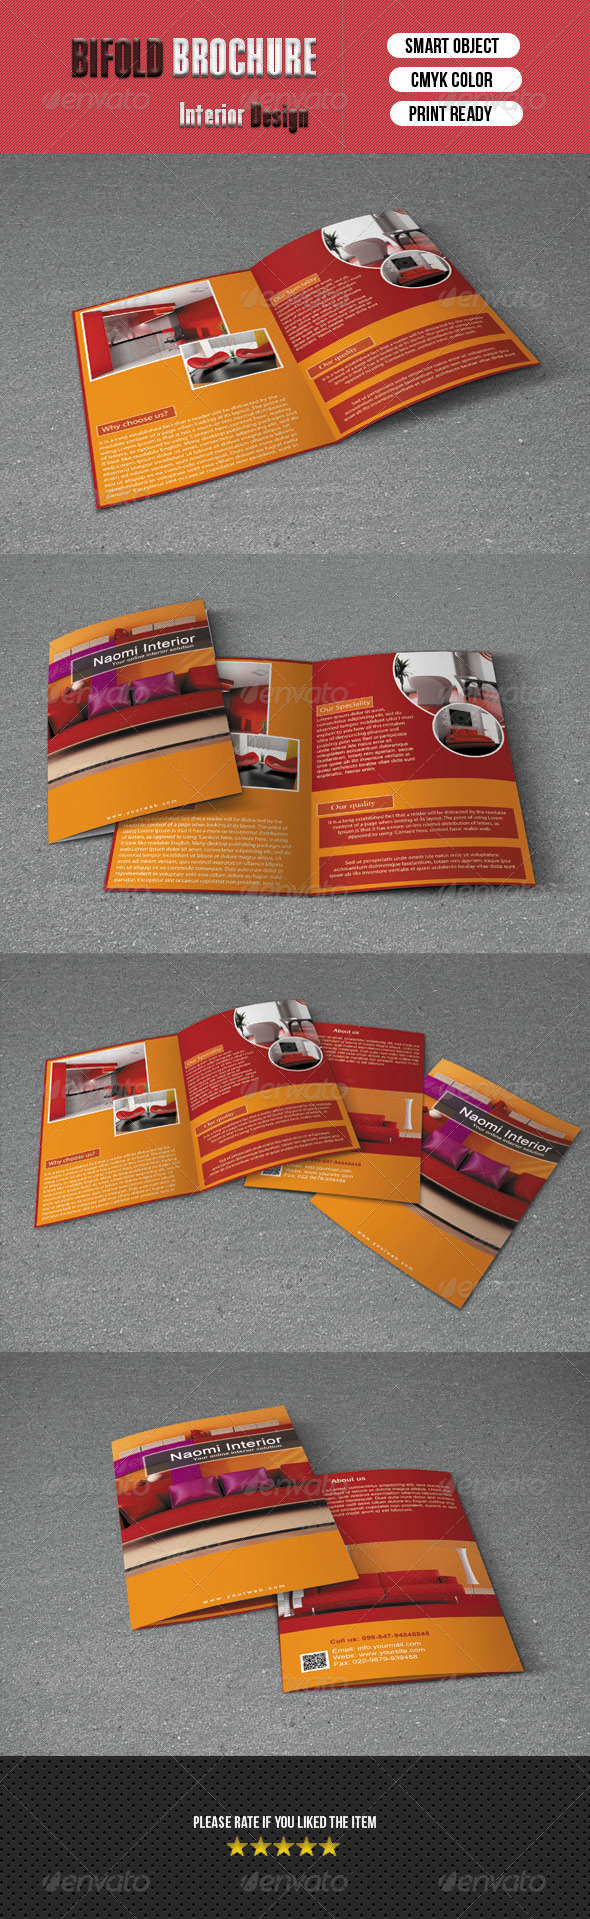 Bifold Brochure- Interior Design - Corporate Brochures